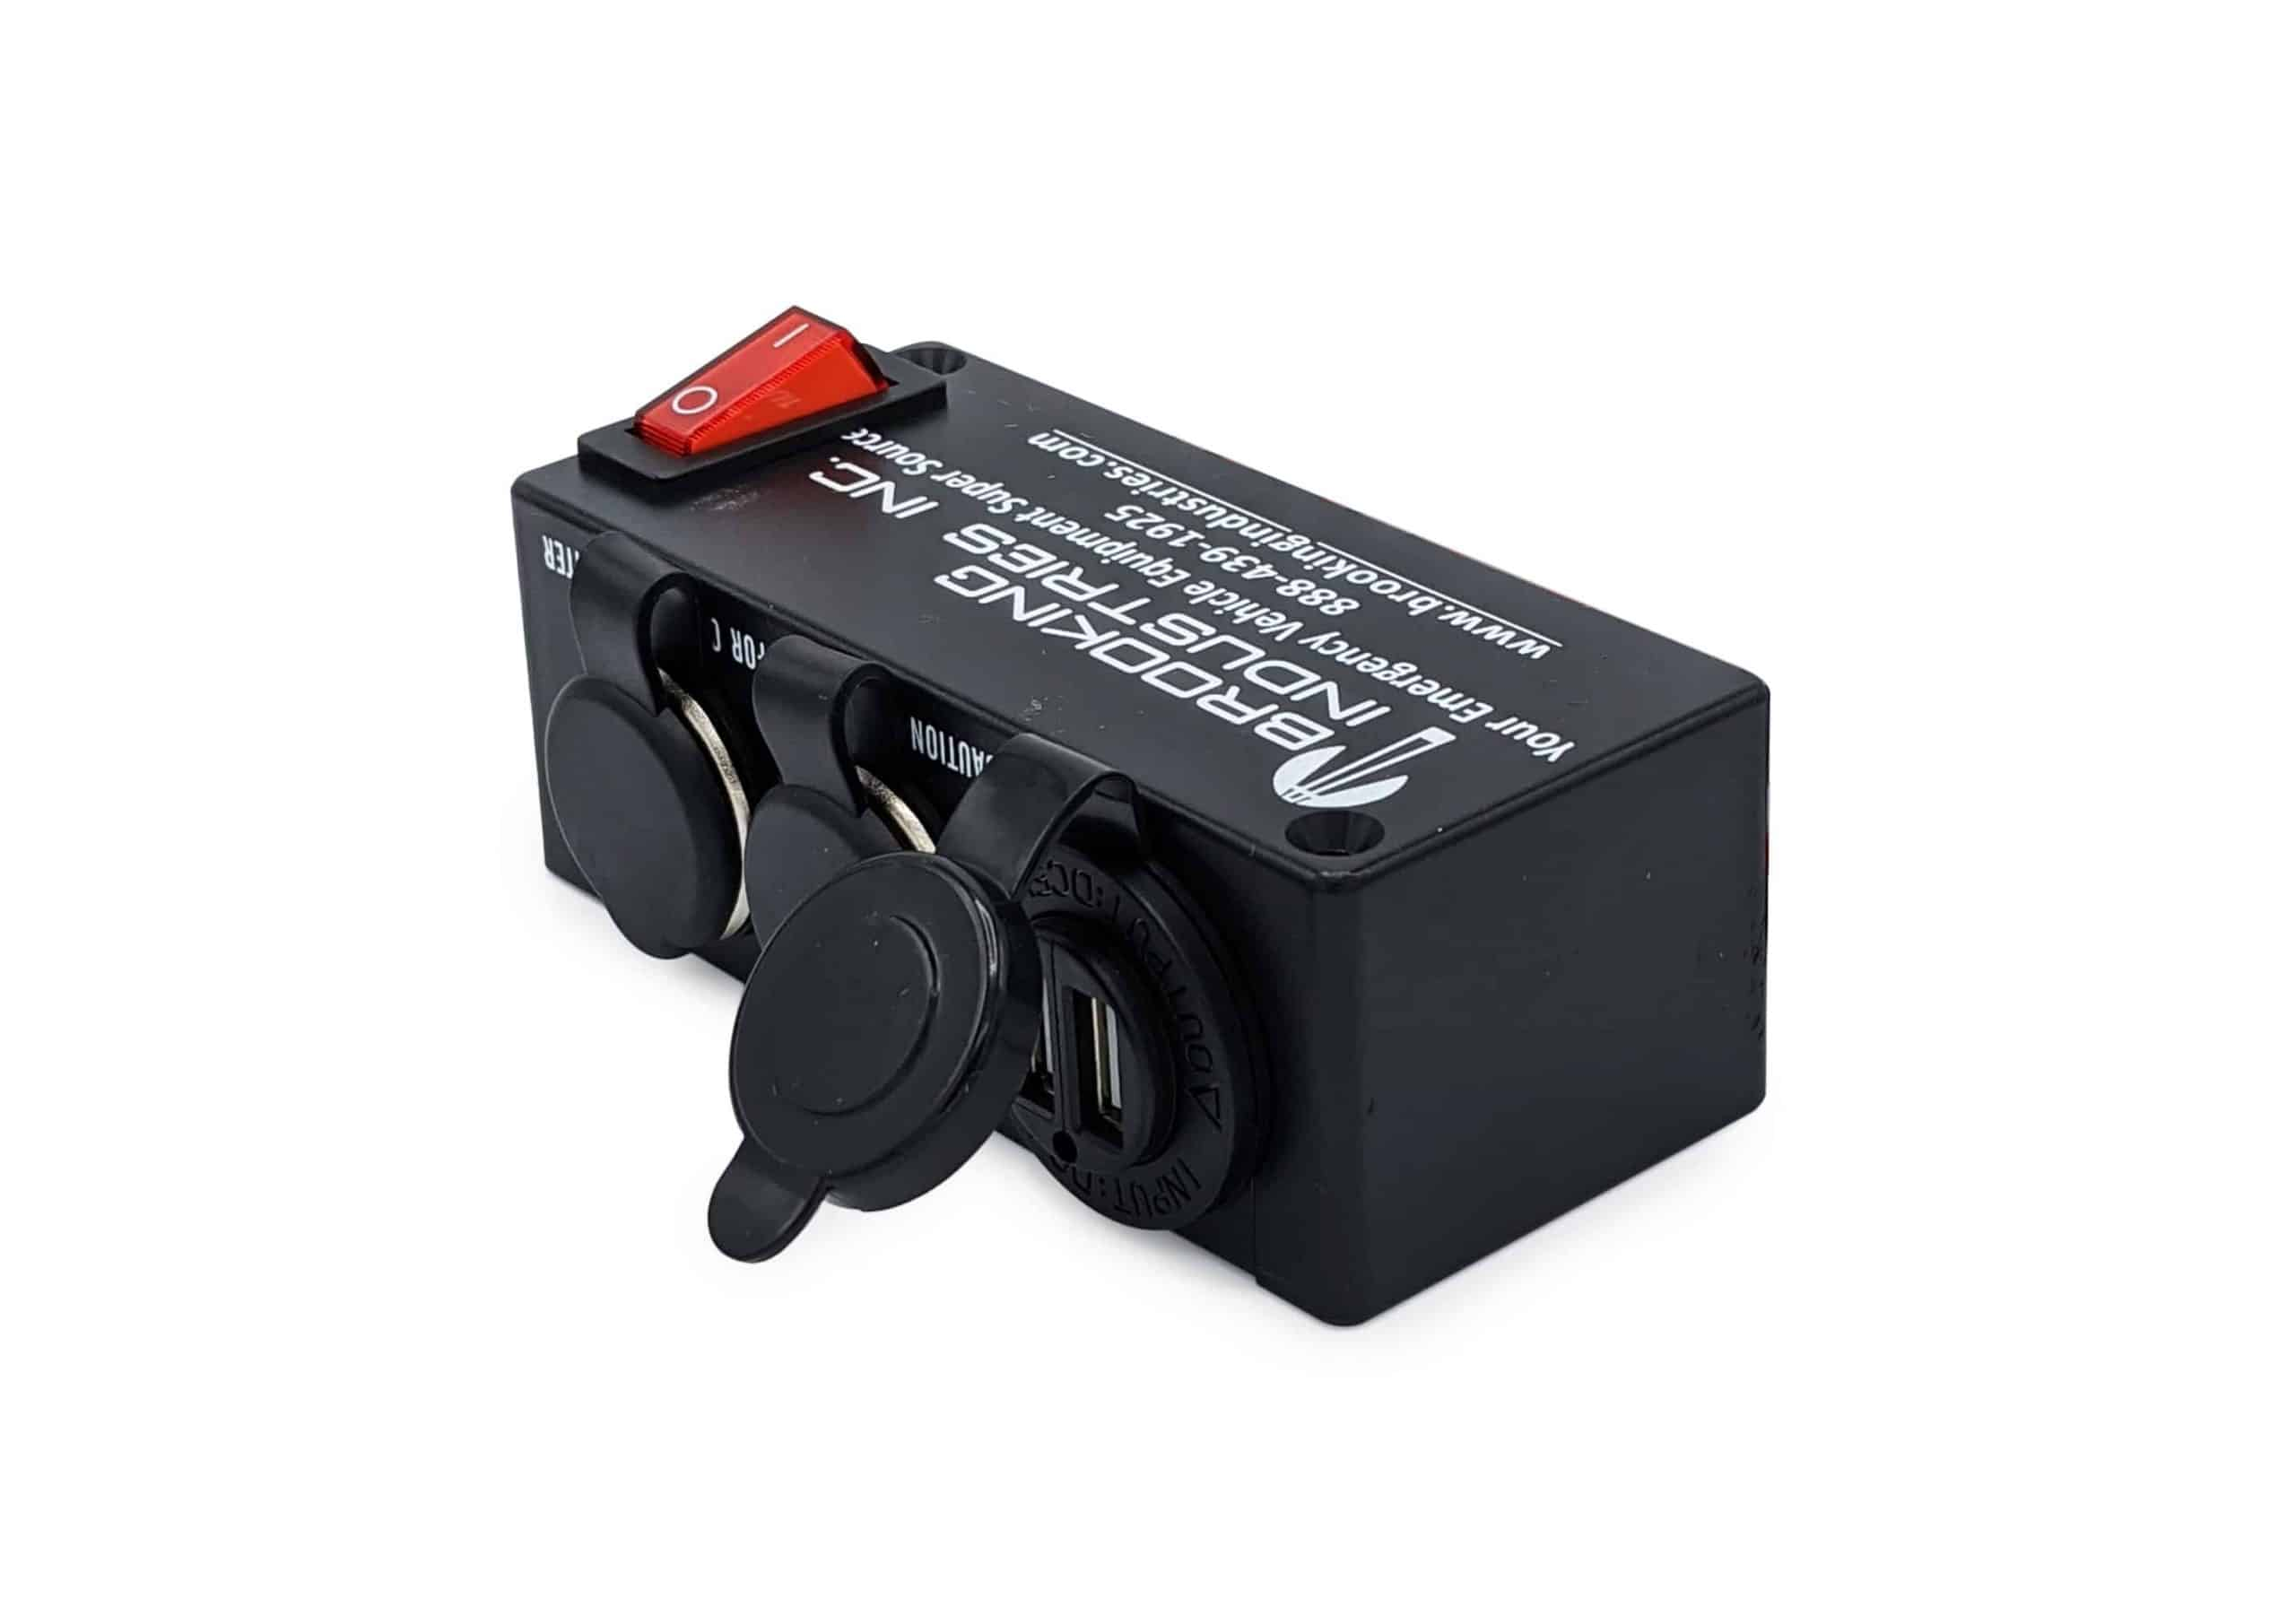 Brooking-LED-Accessories-Outlet Boxes-BR-930-USB-2(1)